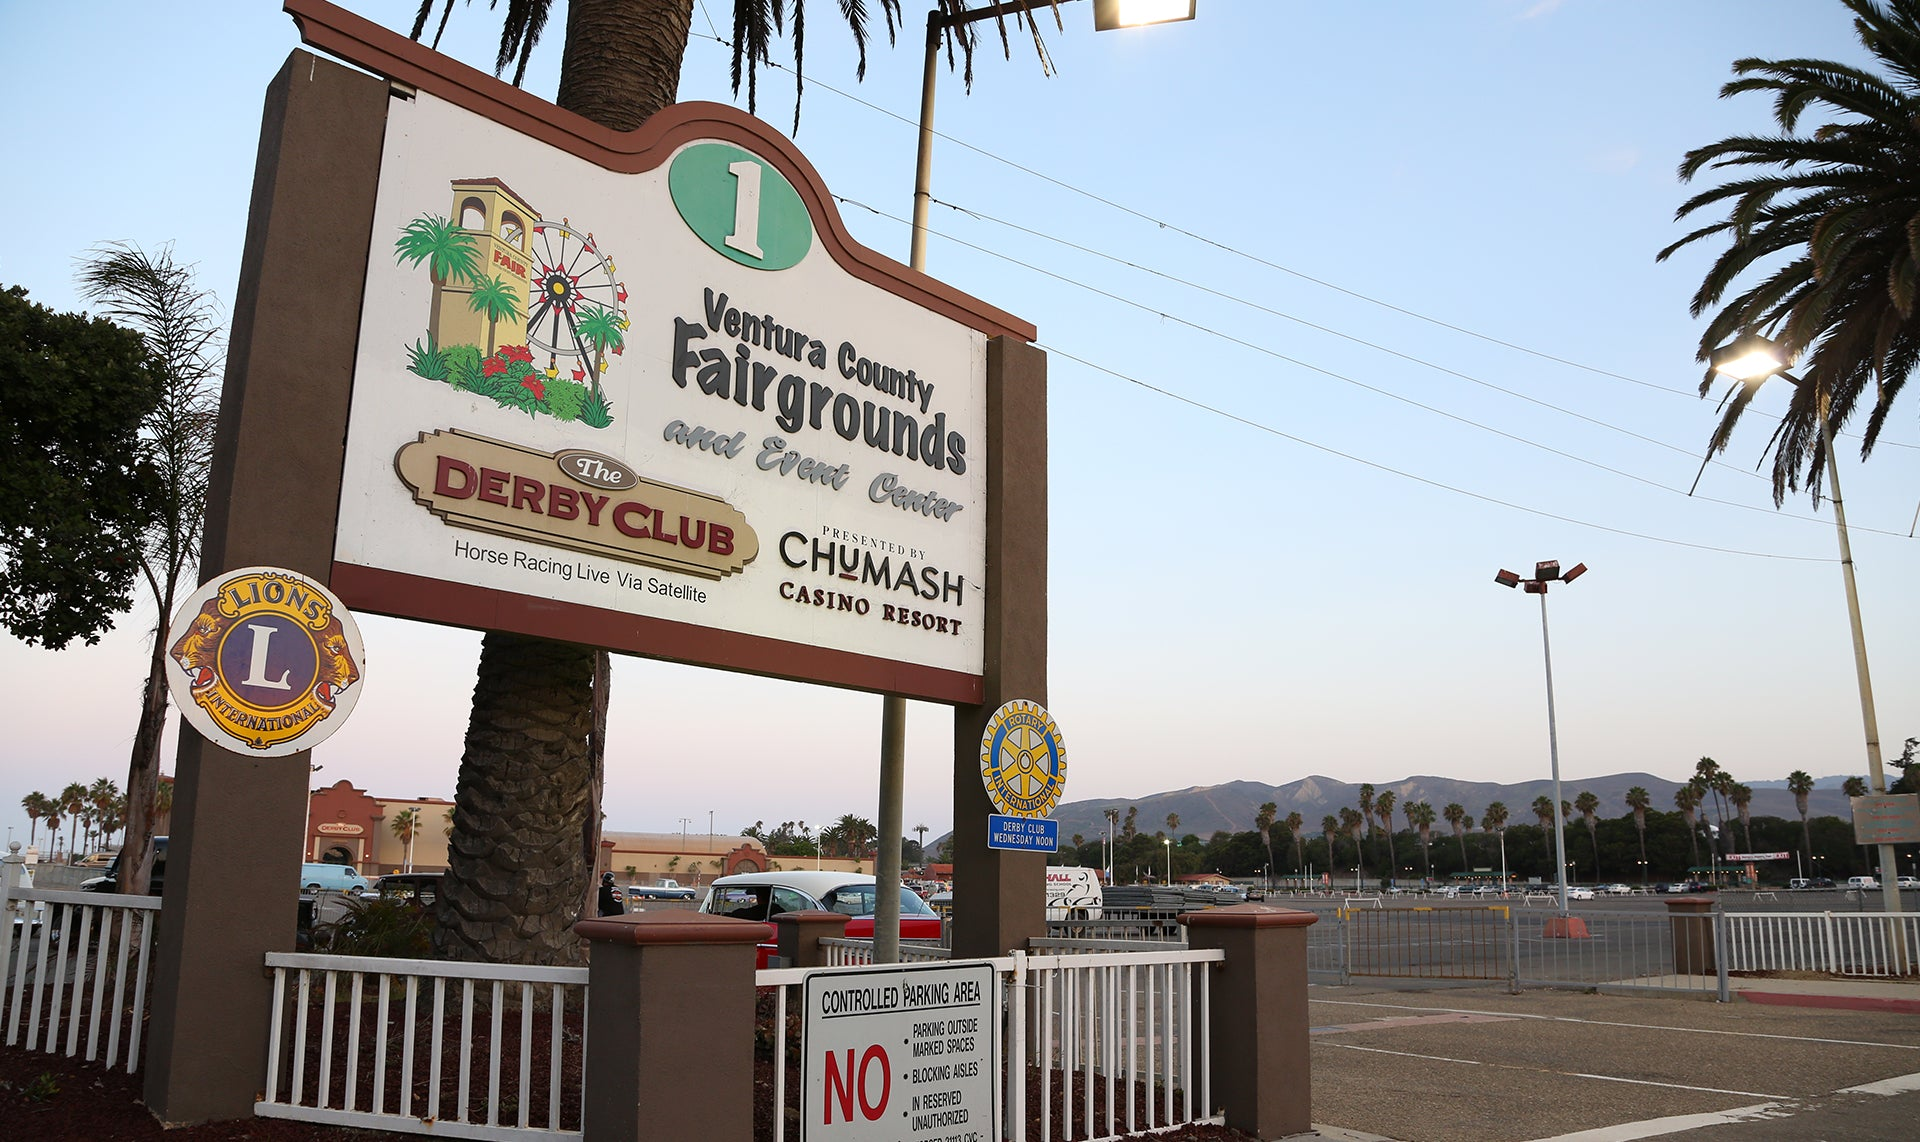 Ventura County Fairgrounds